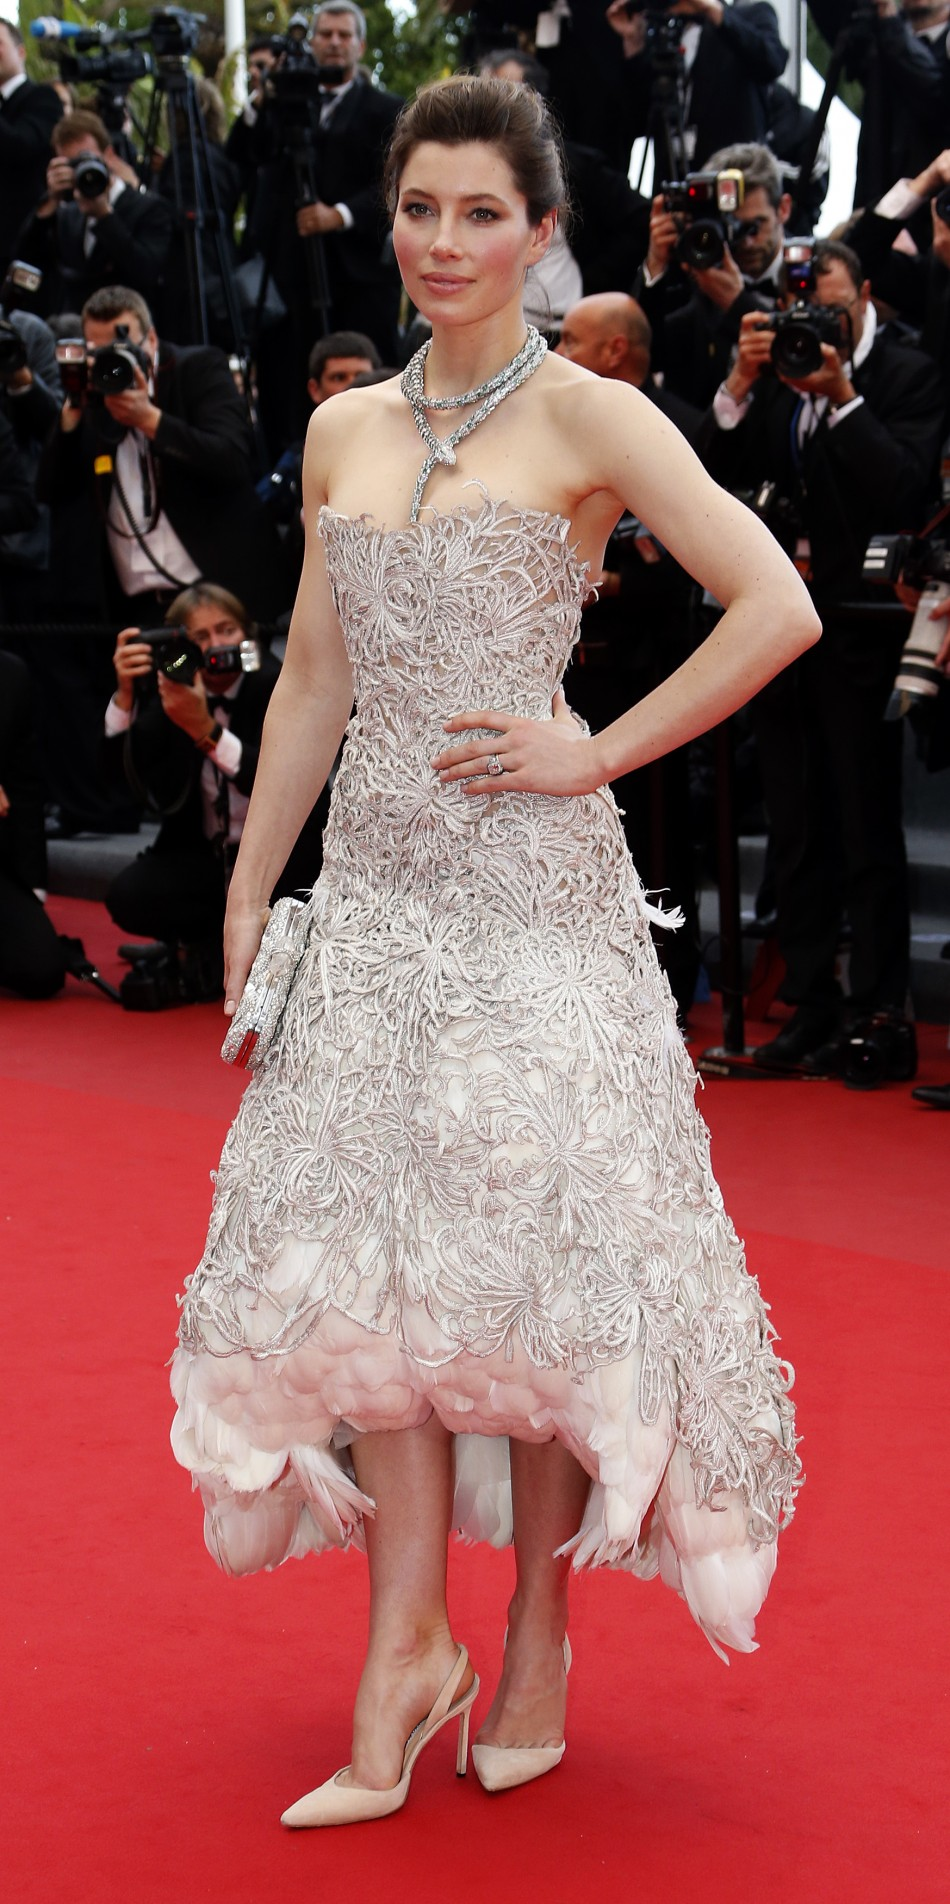 Actress Jessica Biel poses on the red carpet as she arrives for the screening of the film Inside Llewyn Davis in competition during the 66th Cannes Film Festival in Cannes May 19, 2013.